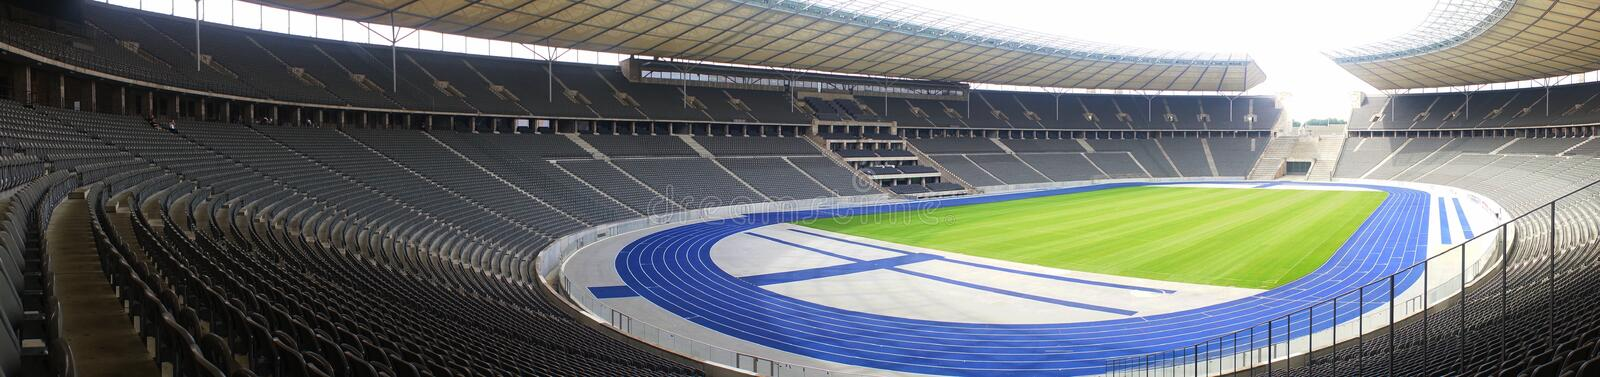 Download Panorama Seats Olympia Stadion Stock Photo - Image: 25773102